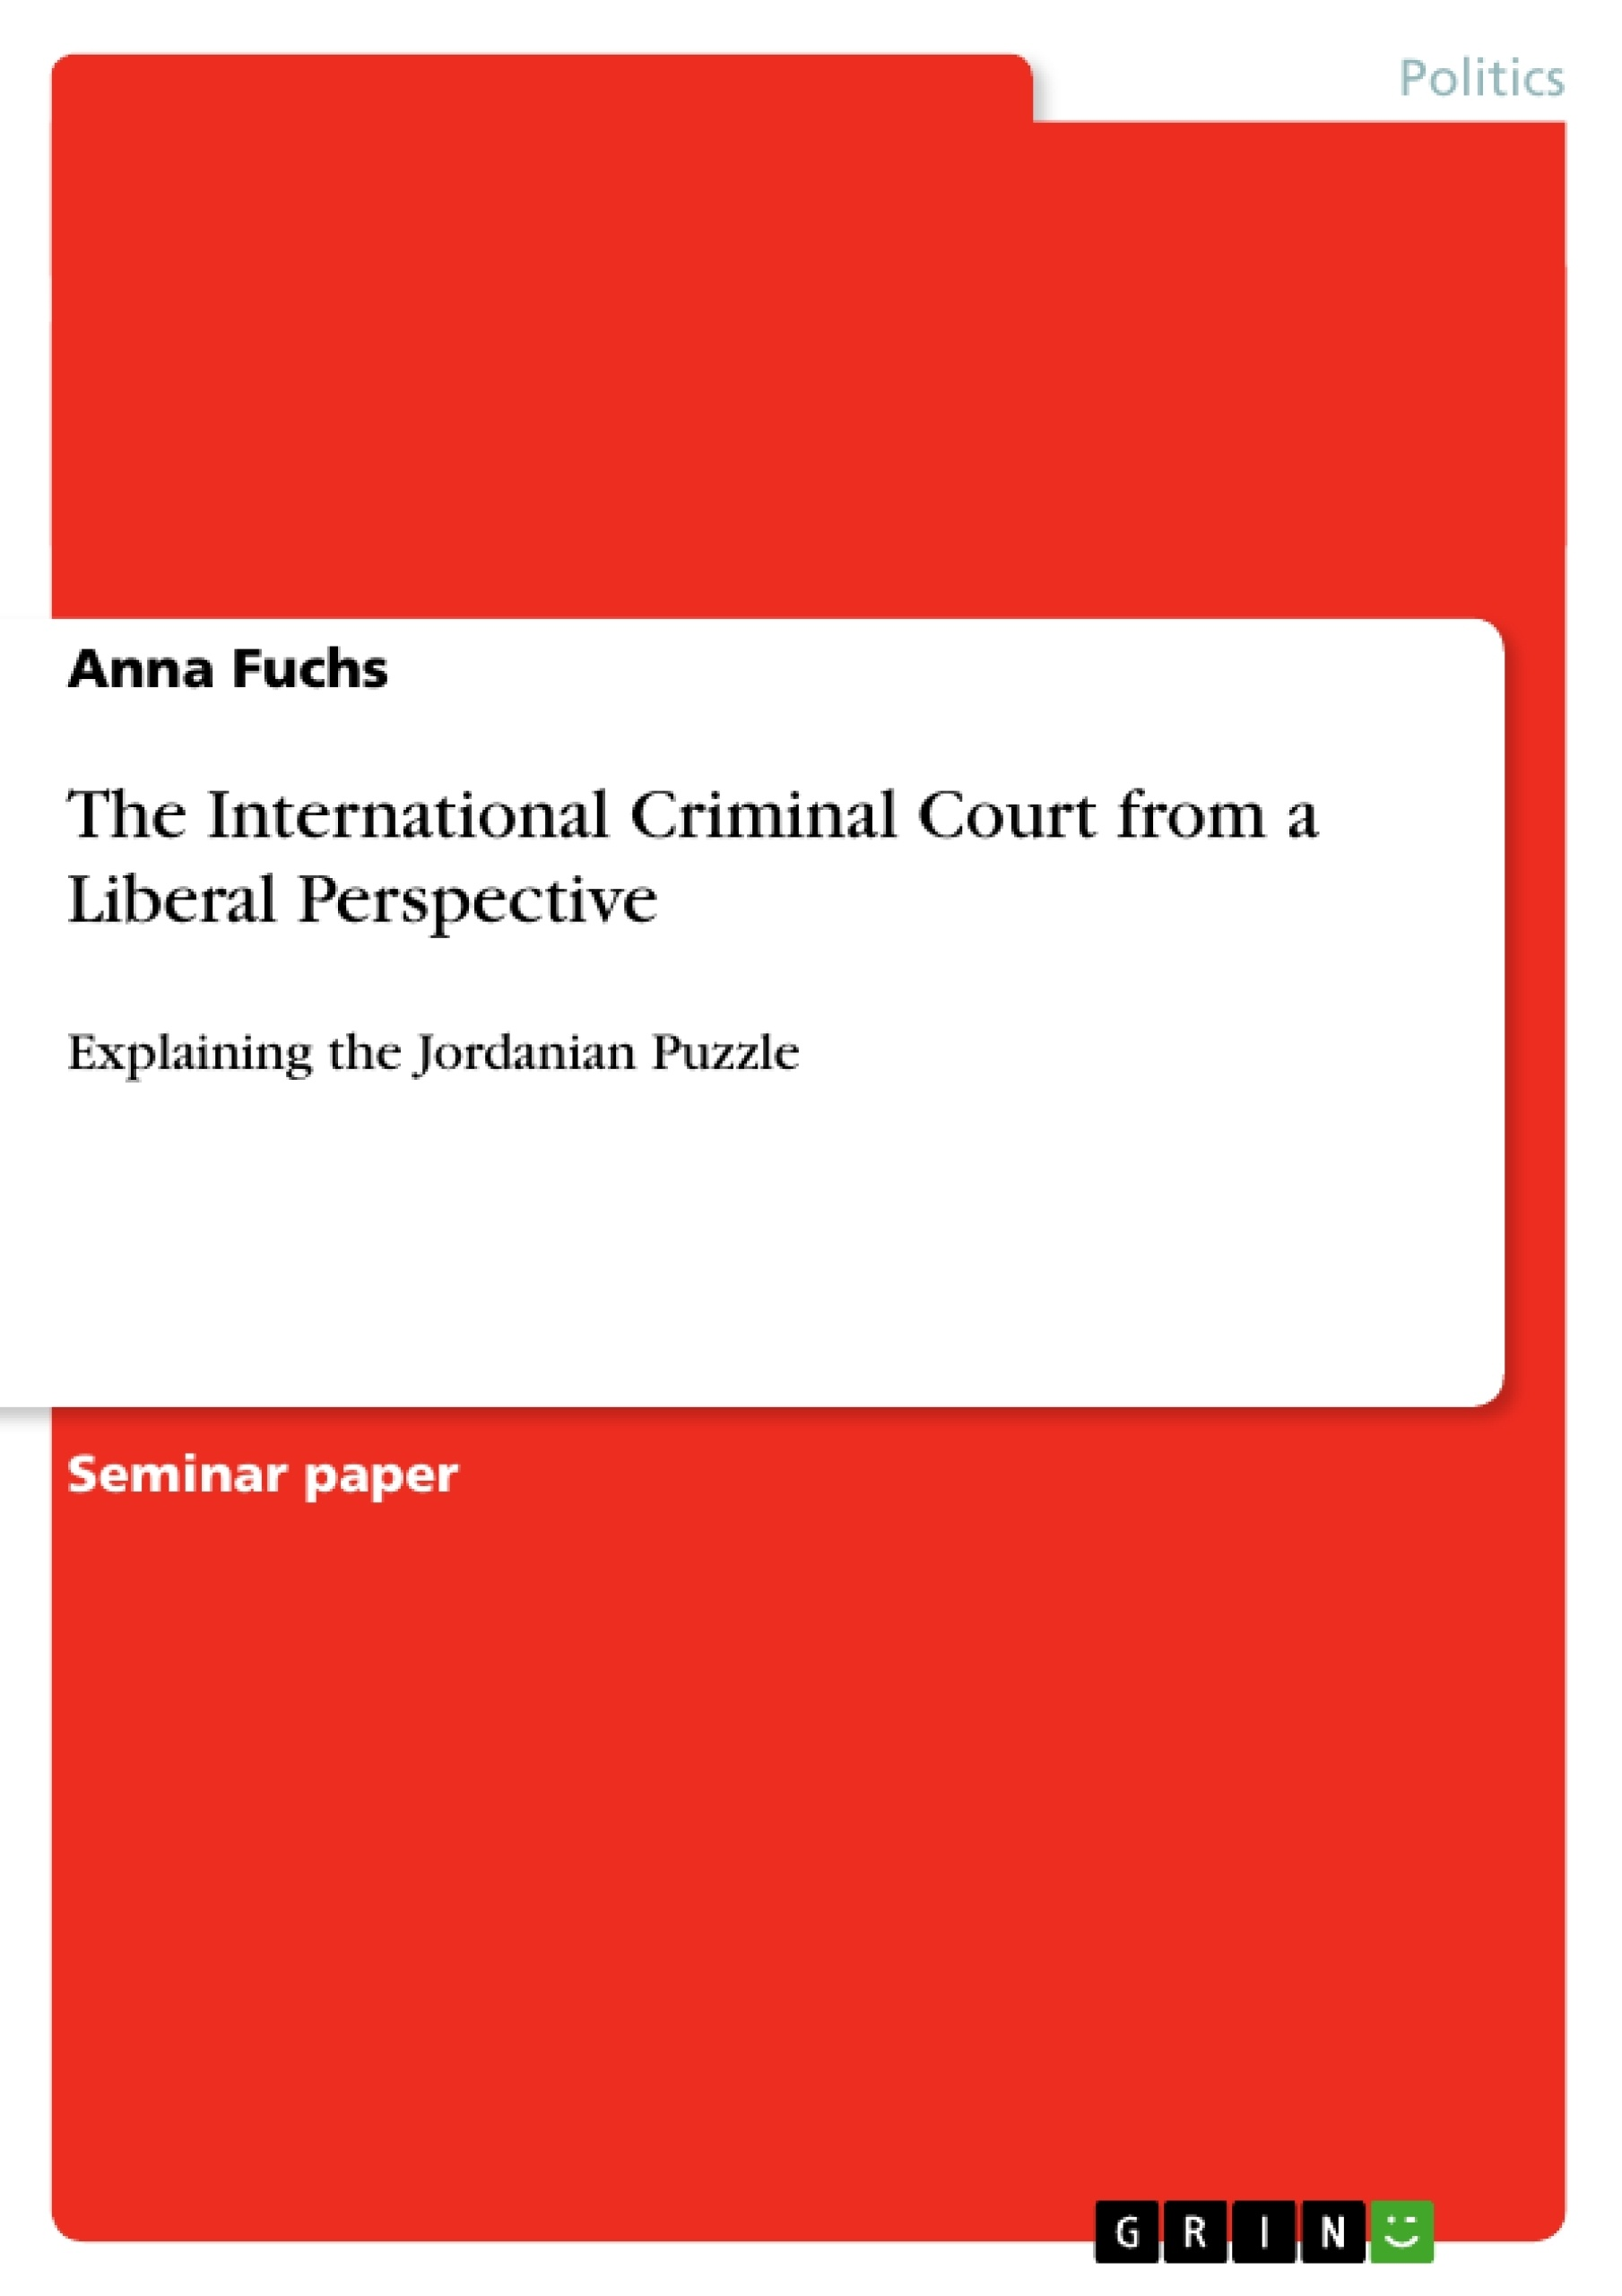 Title: The International Criminal Court from a Liberal Perspective